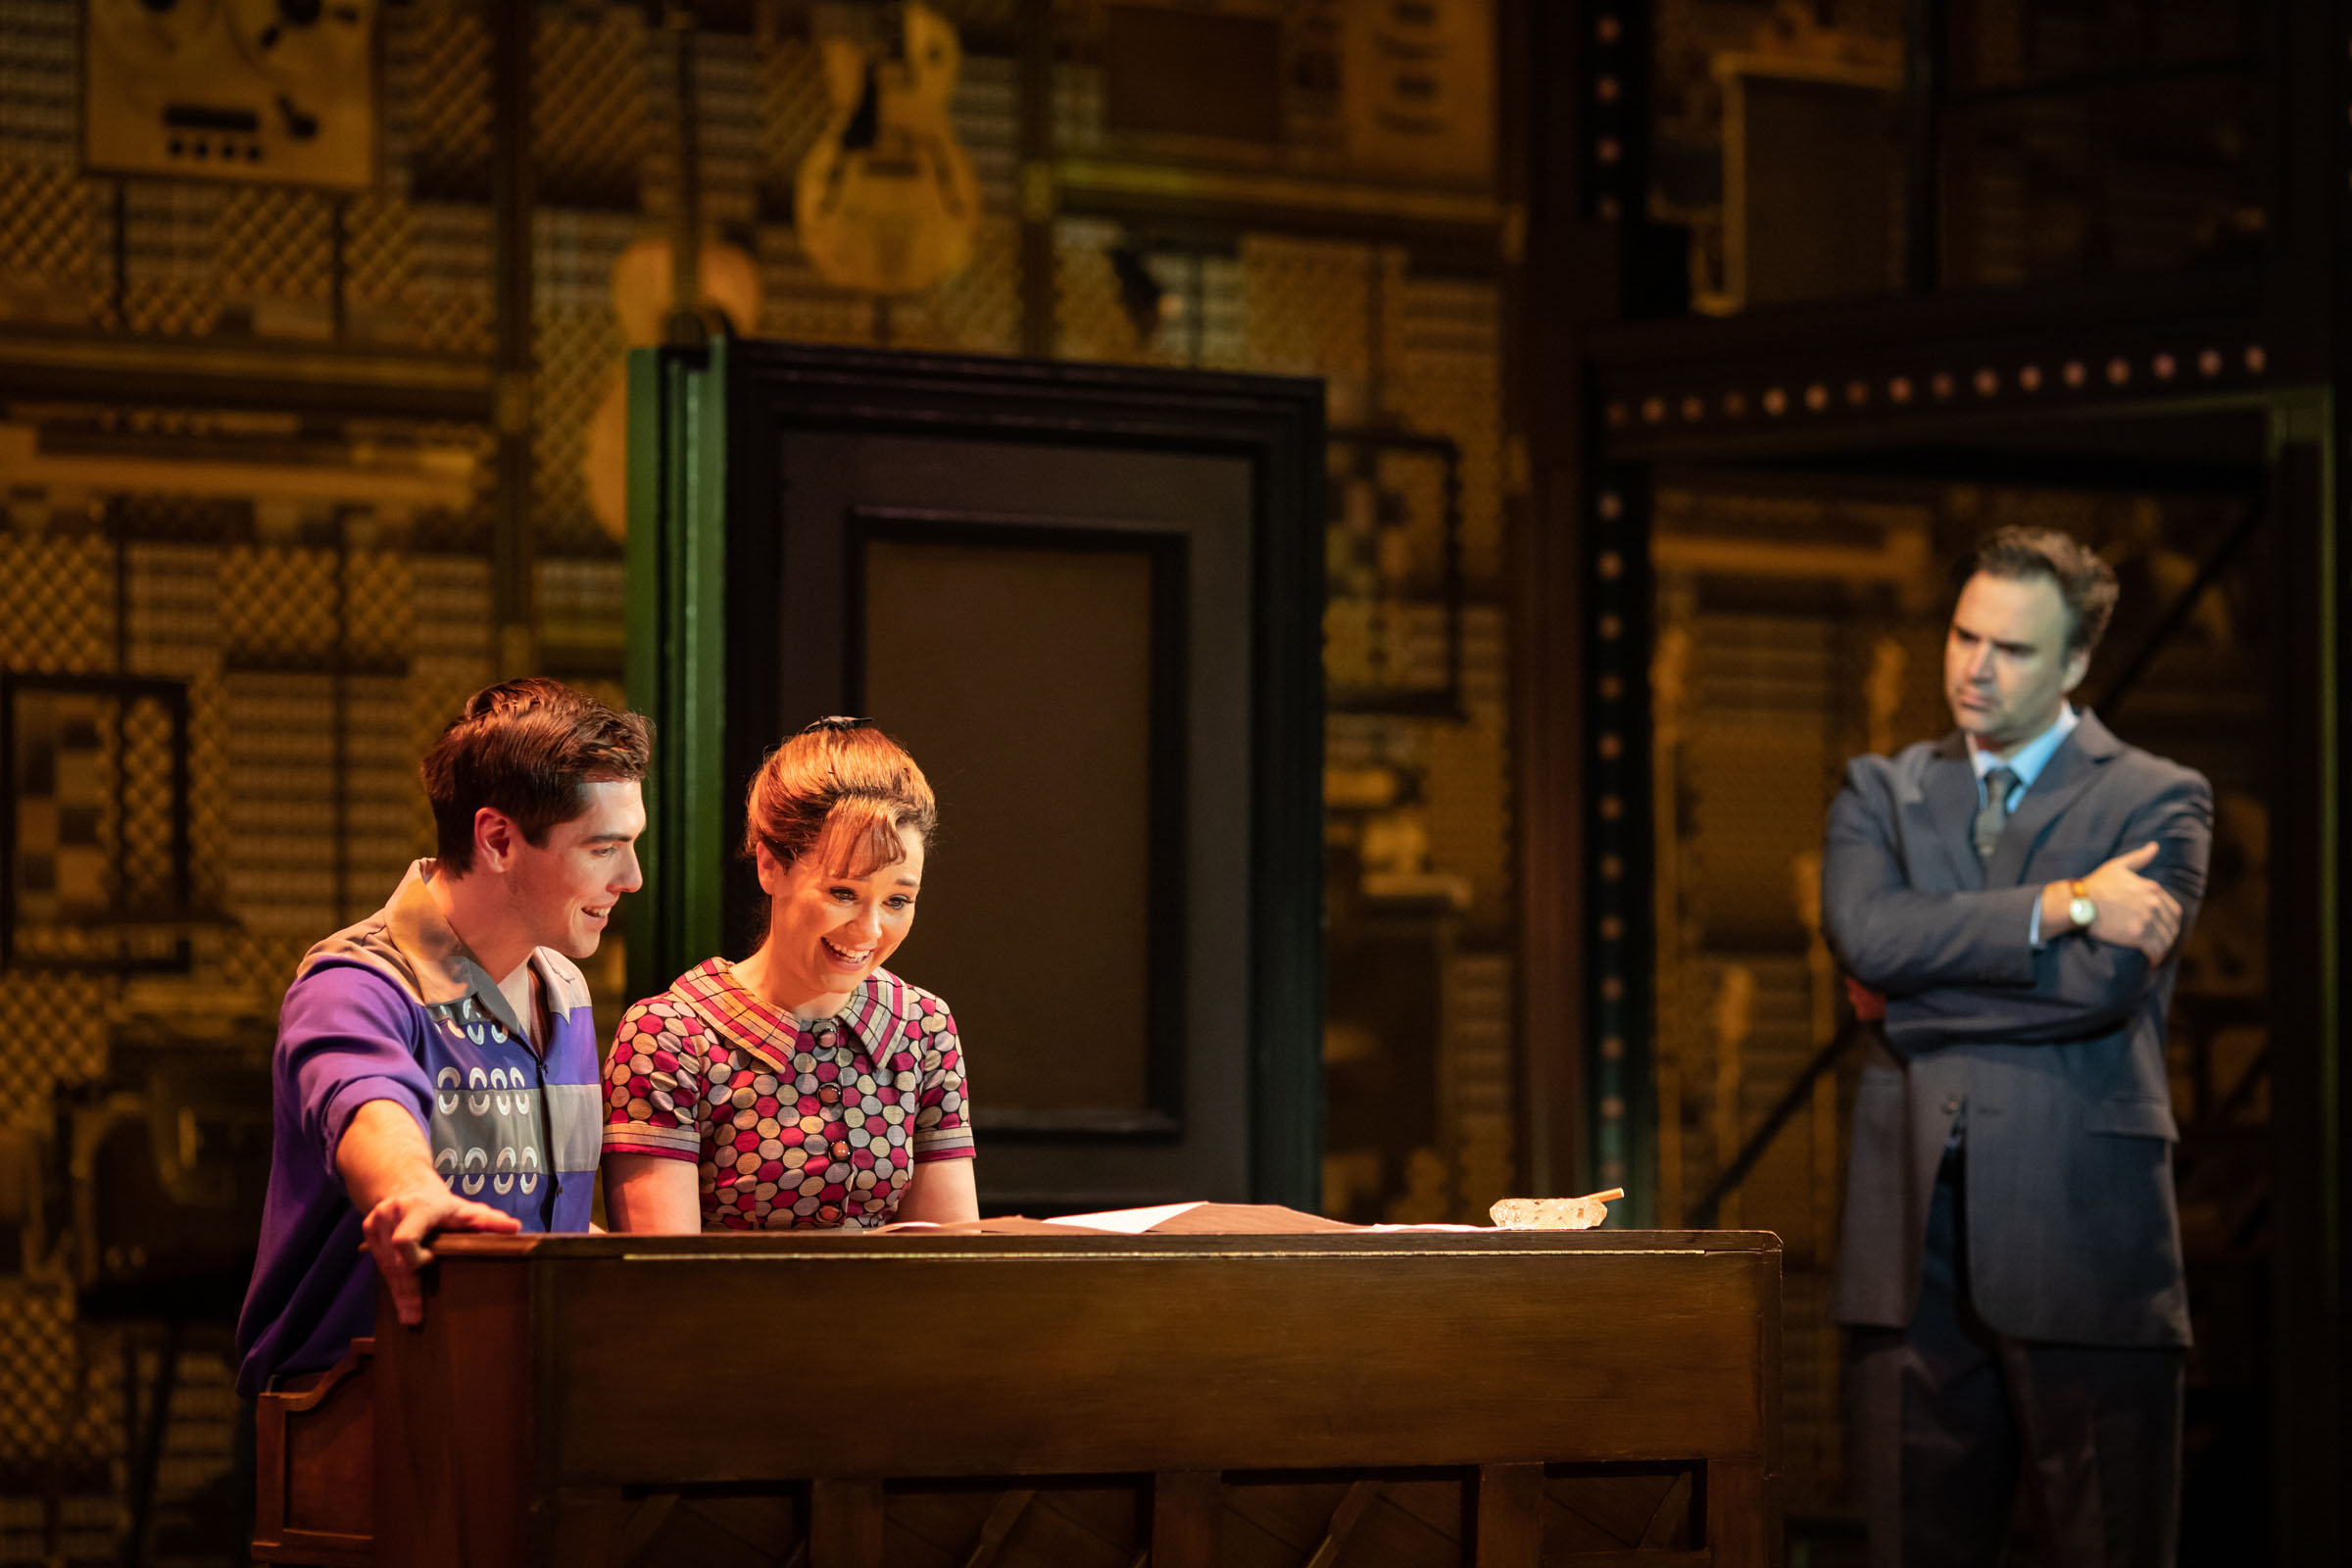 Adam Gillian as Gerry Goffin, Daisy Wood-Davis as Carole King and Oliver Boot as Donnie Kirshner in 'Beautiful - The Carole King Musical'